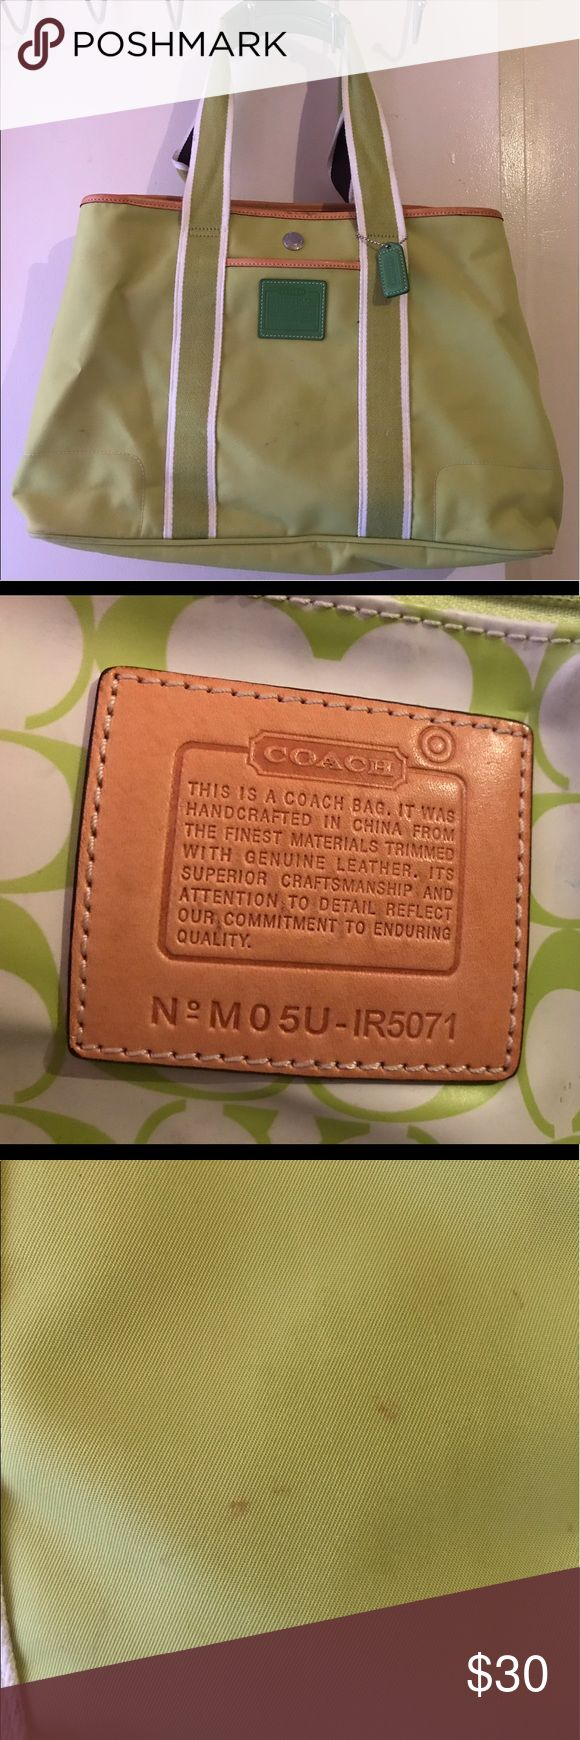 Coach Tote Great condition(2 small areas not, see photos) Comes from pet free, smoke free home. Carried bag a handful of times. Yes it's AUTHENTIC!!! It has pockets inside 1 that zips an outside pocket in front and also a zipper to close the bag. It has snaps in both sides to make the bag large or small. Coach Bags Totes